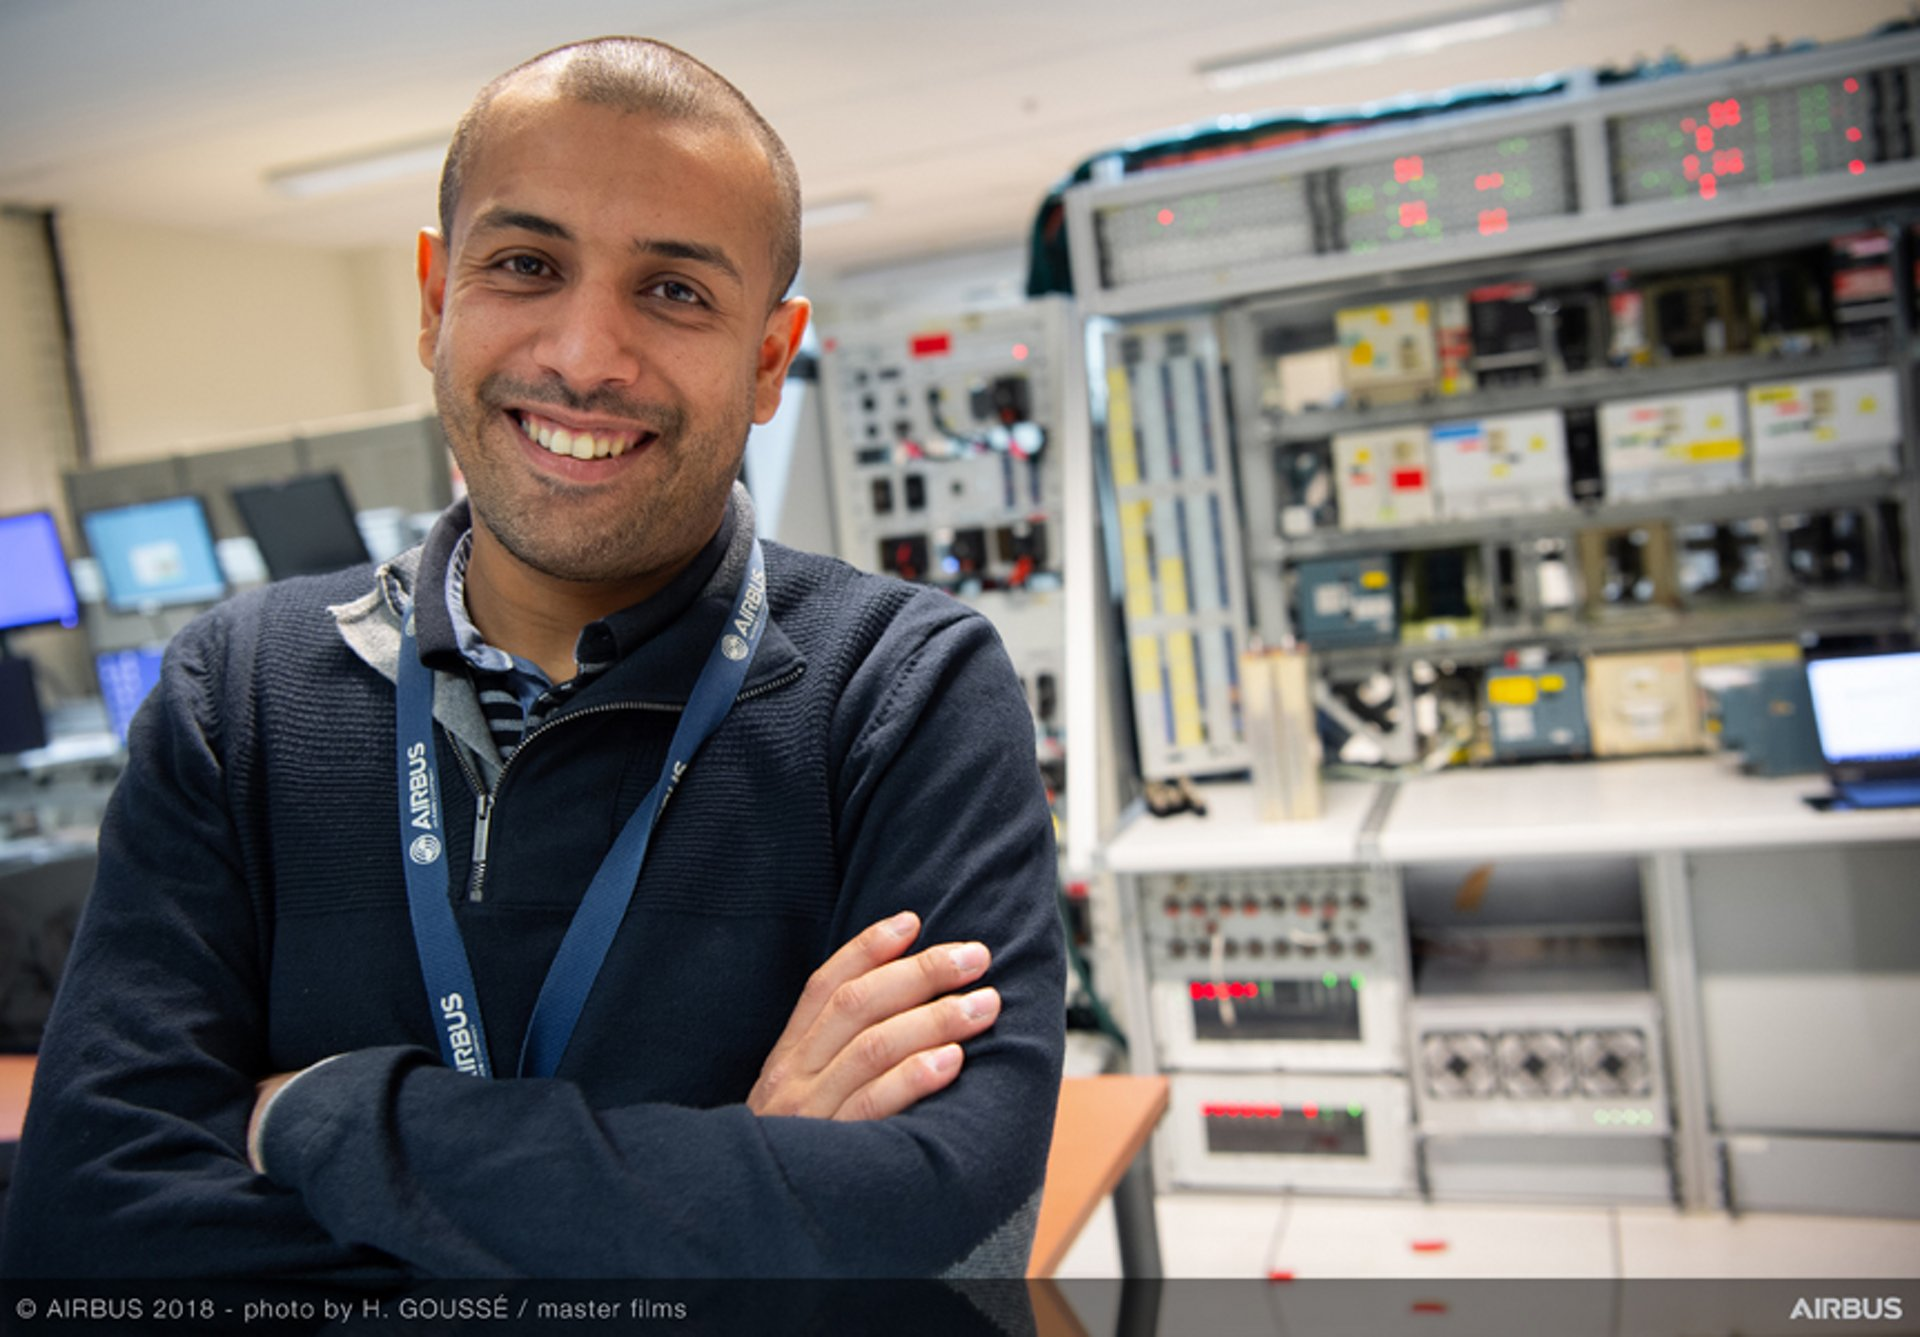 A data scientist at Airbus' Flight and Integration Test Centre, Adil Soubki focuses on predictive maintenance, anomaly detection and root cause analysis in his work